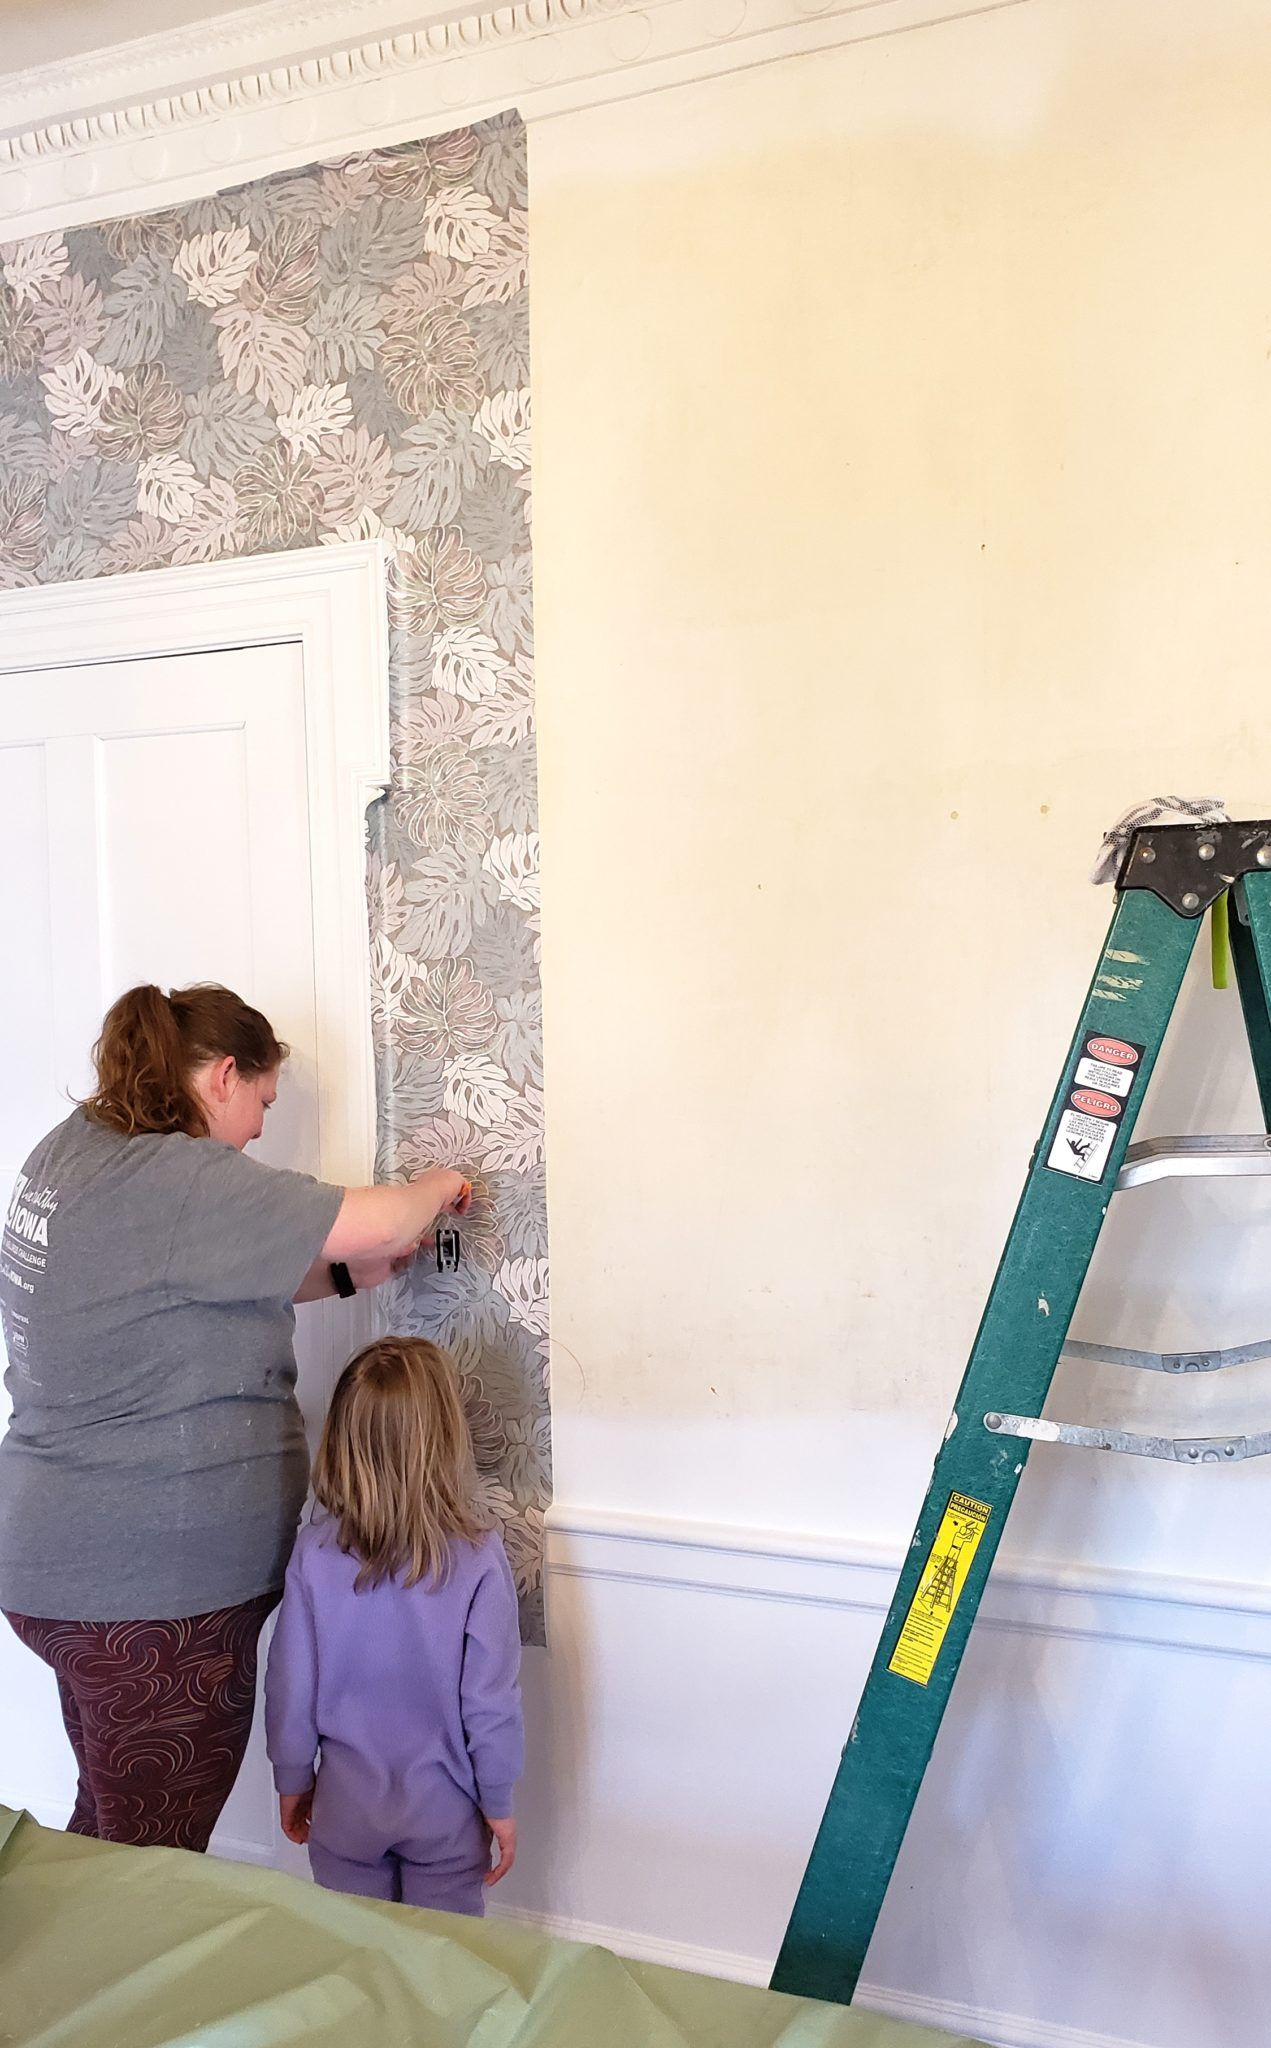 Putting Up Wallpaper With Wallpaper Paste Reality Daydream How To Install Wallpaper How To Apply Wallpaper Wallpaper Paste